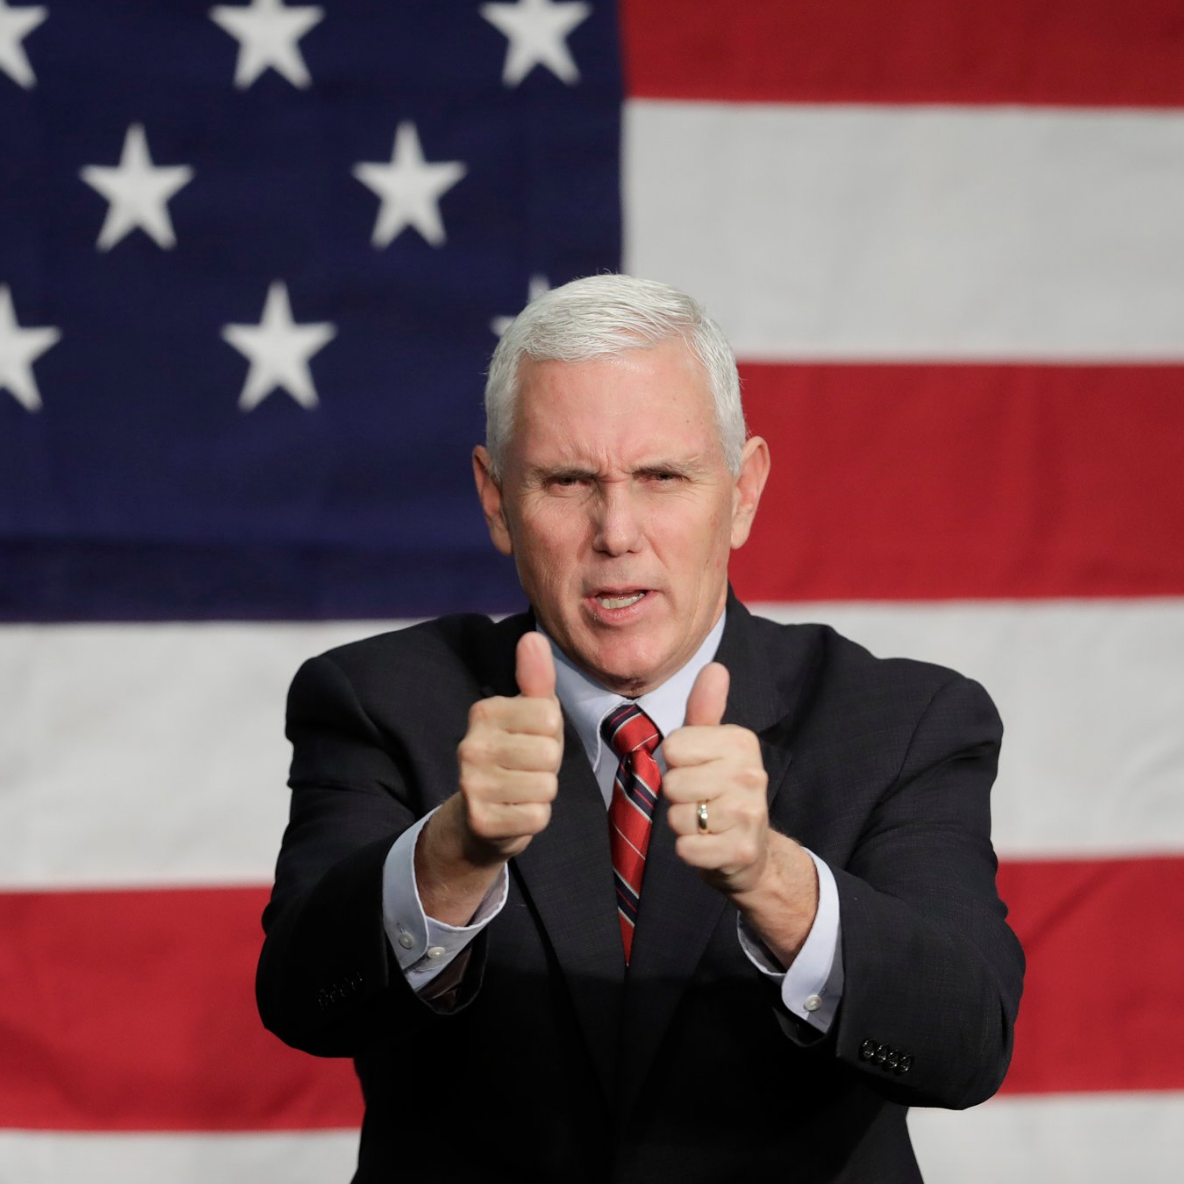 """Pro-Life Pence Says """"This Will Be the Generation that Restores Life in America""""… What Do You Think?"""